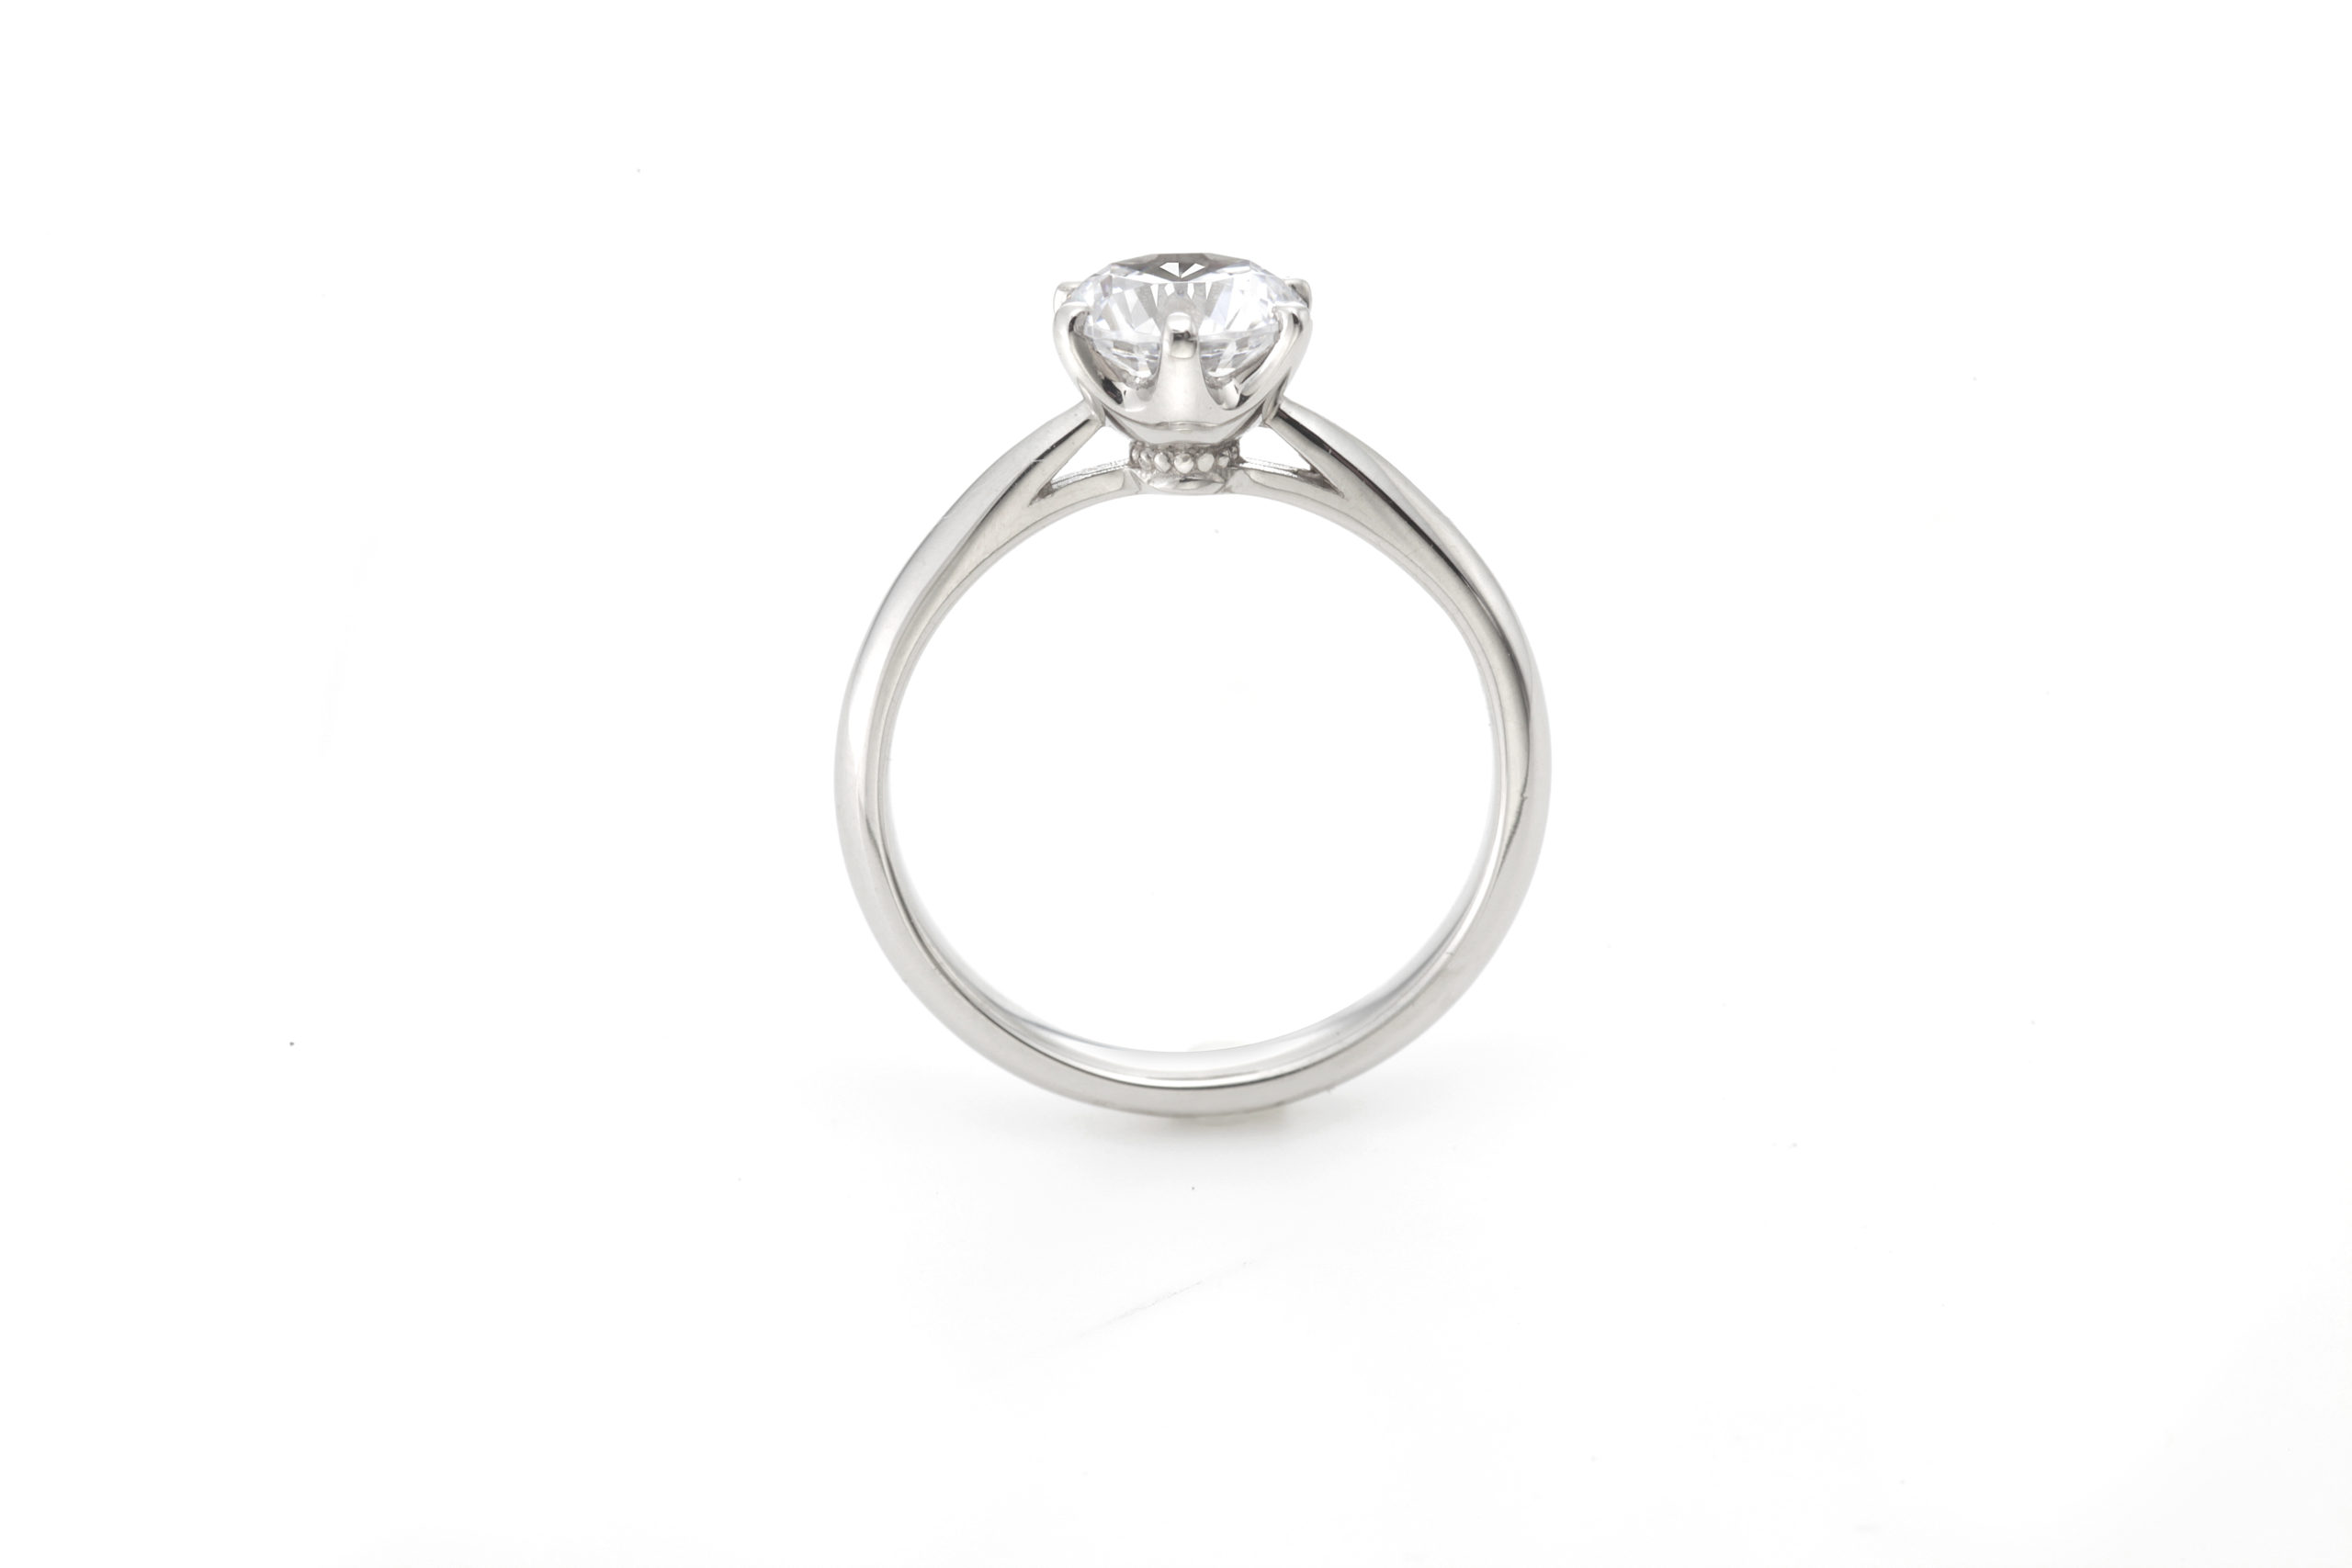 Pure Material Suitable For Wedding Rings